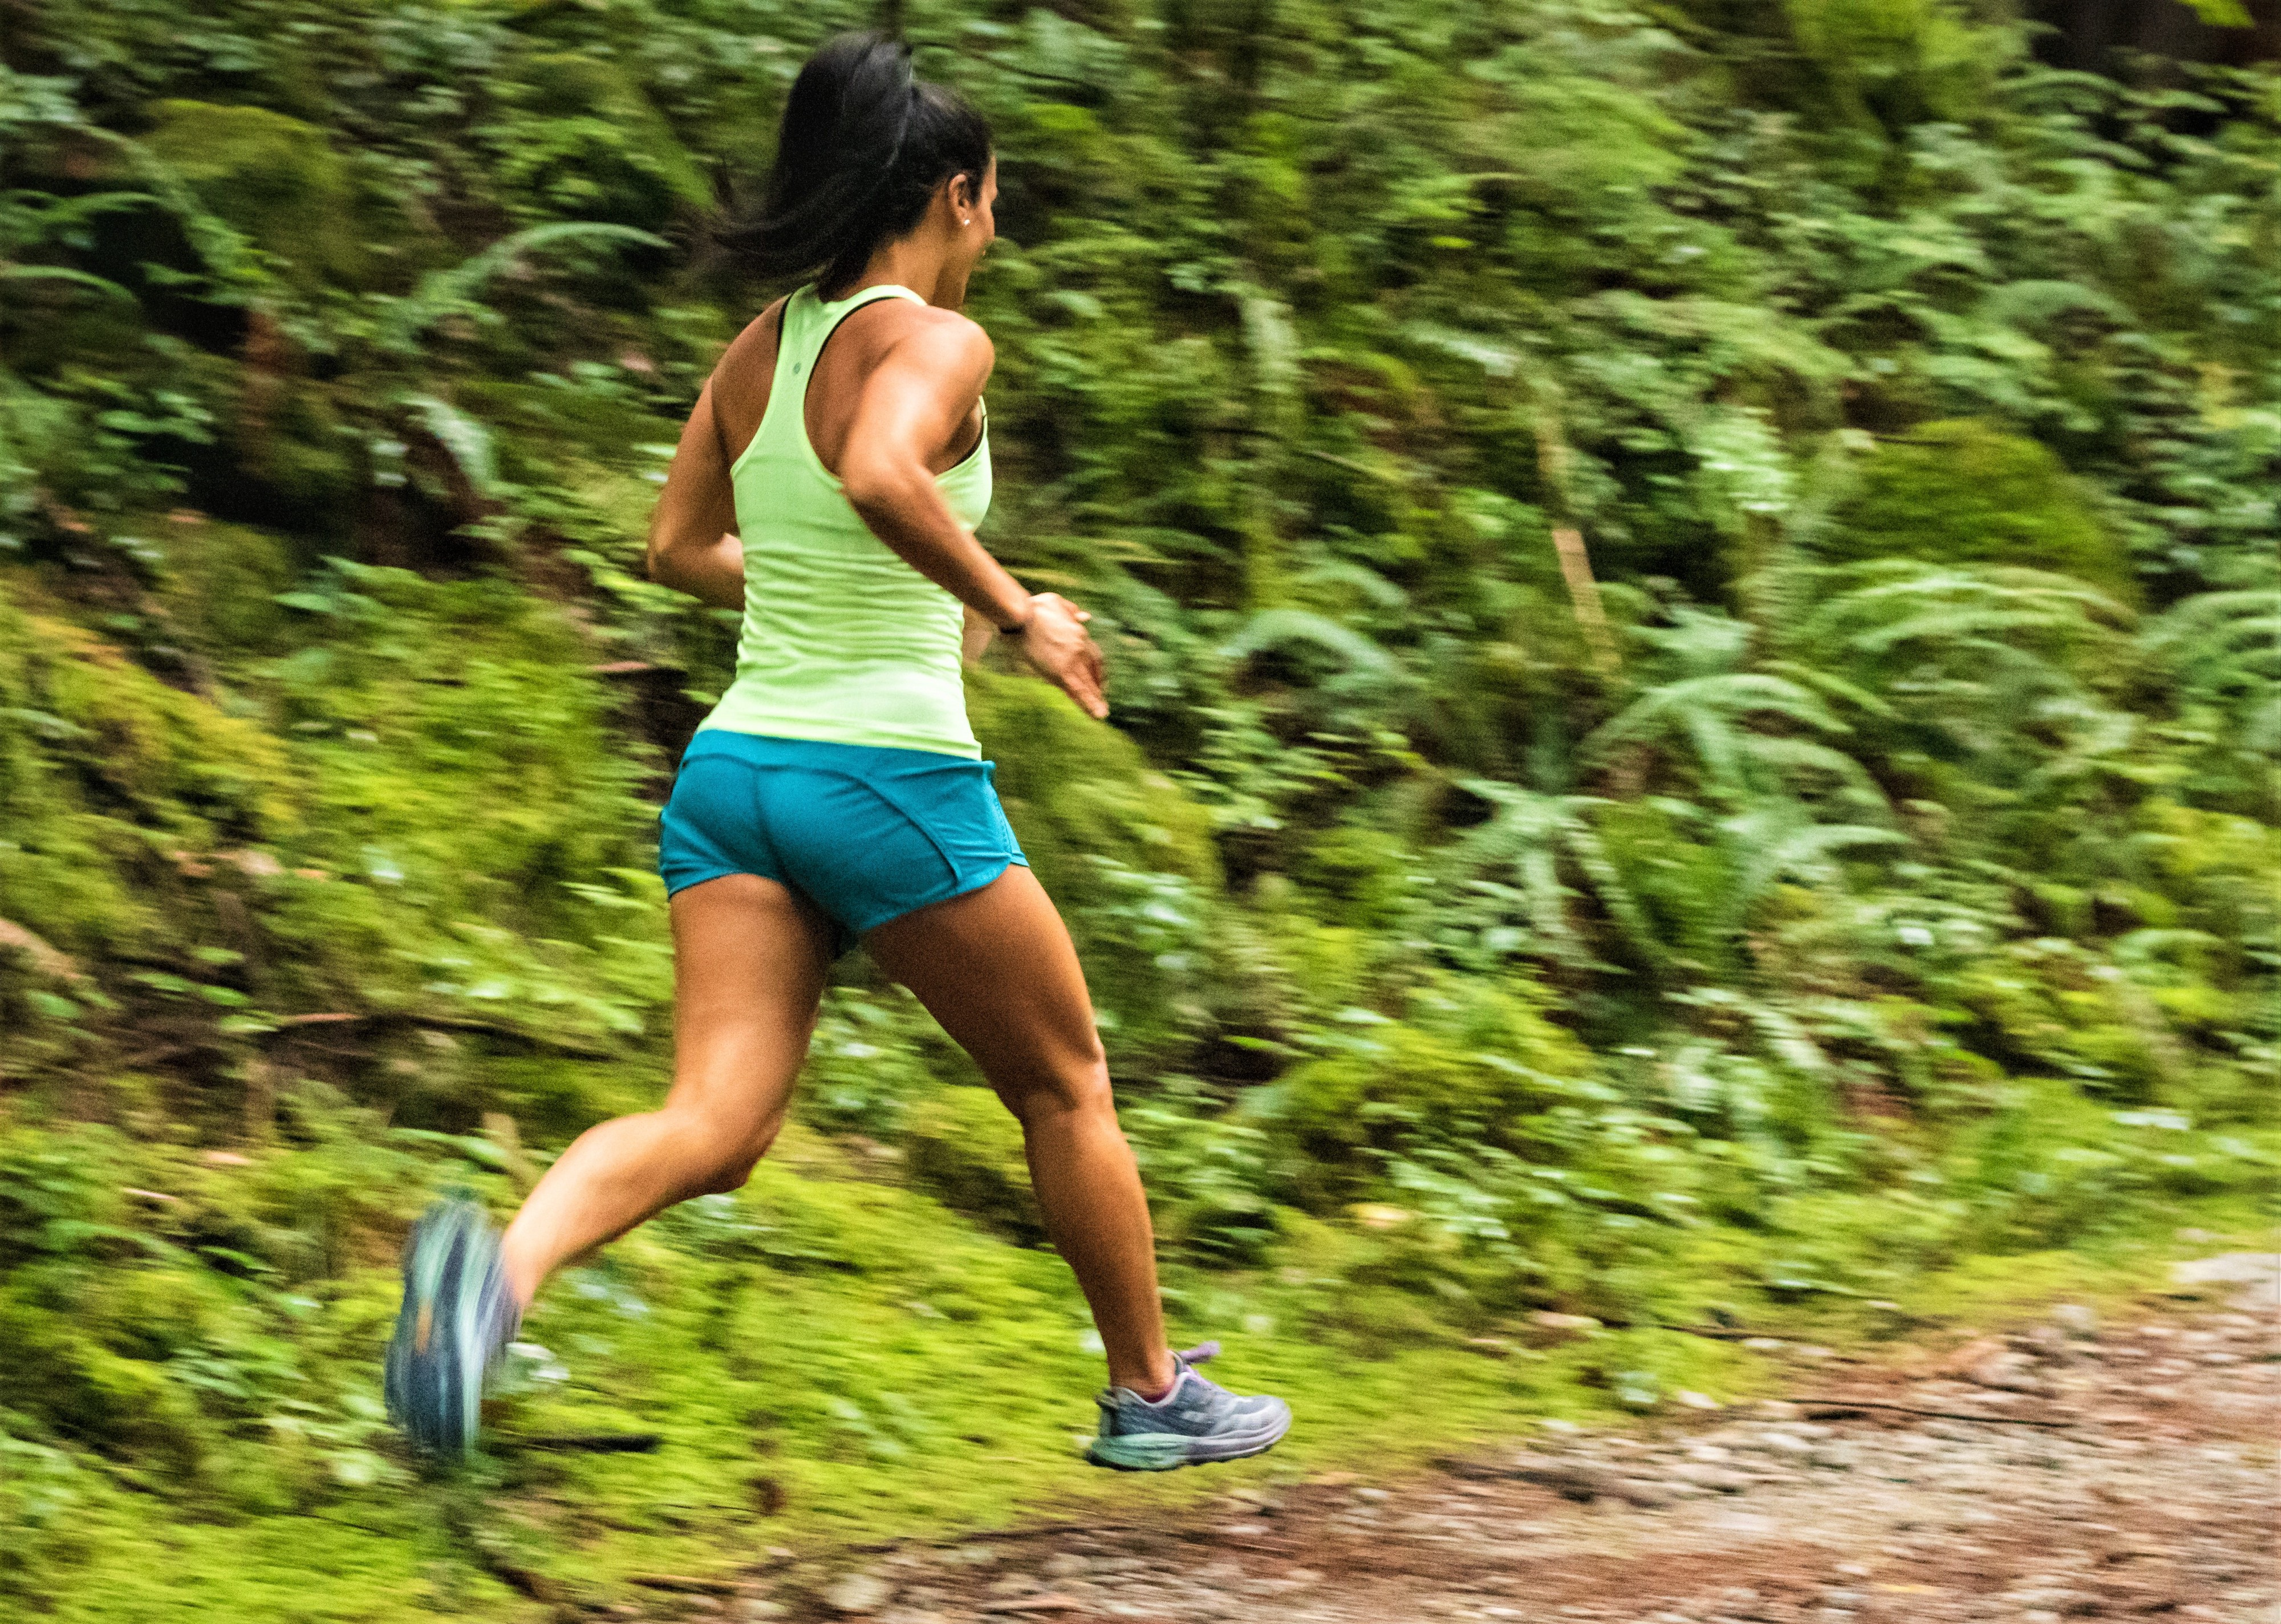 girl with brown hair wearing green t-shirt and blue shorts running on path in forest